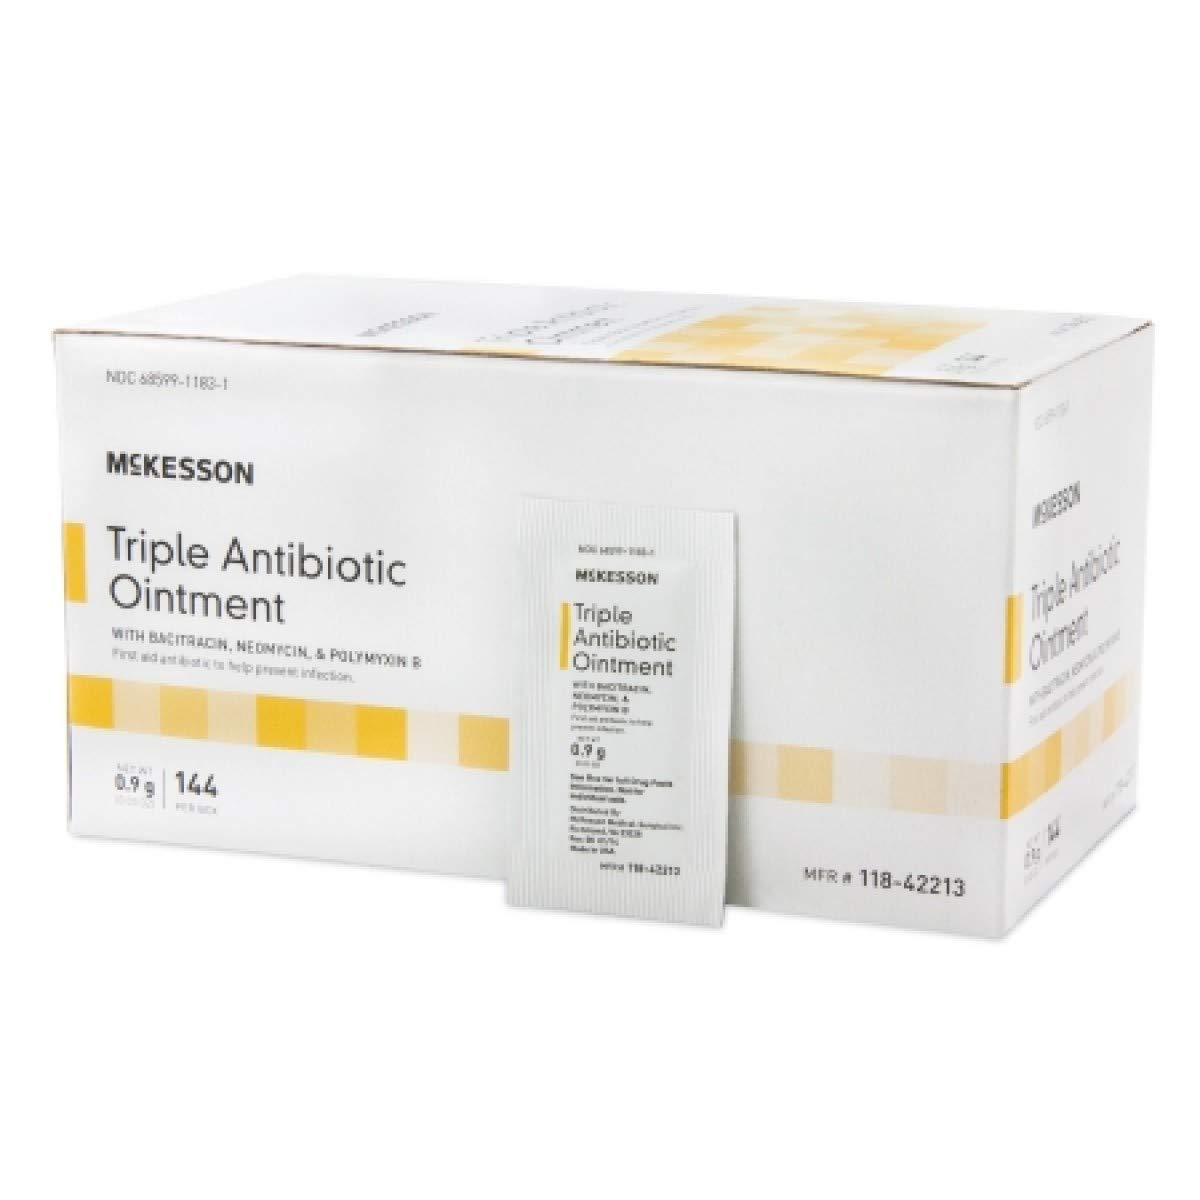 McKesson - First Aid Antibiotic - 0.9 Gram - Ointment - Individual Packet - 1728/Case-McK by McKesson (Image #1)